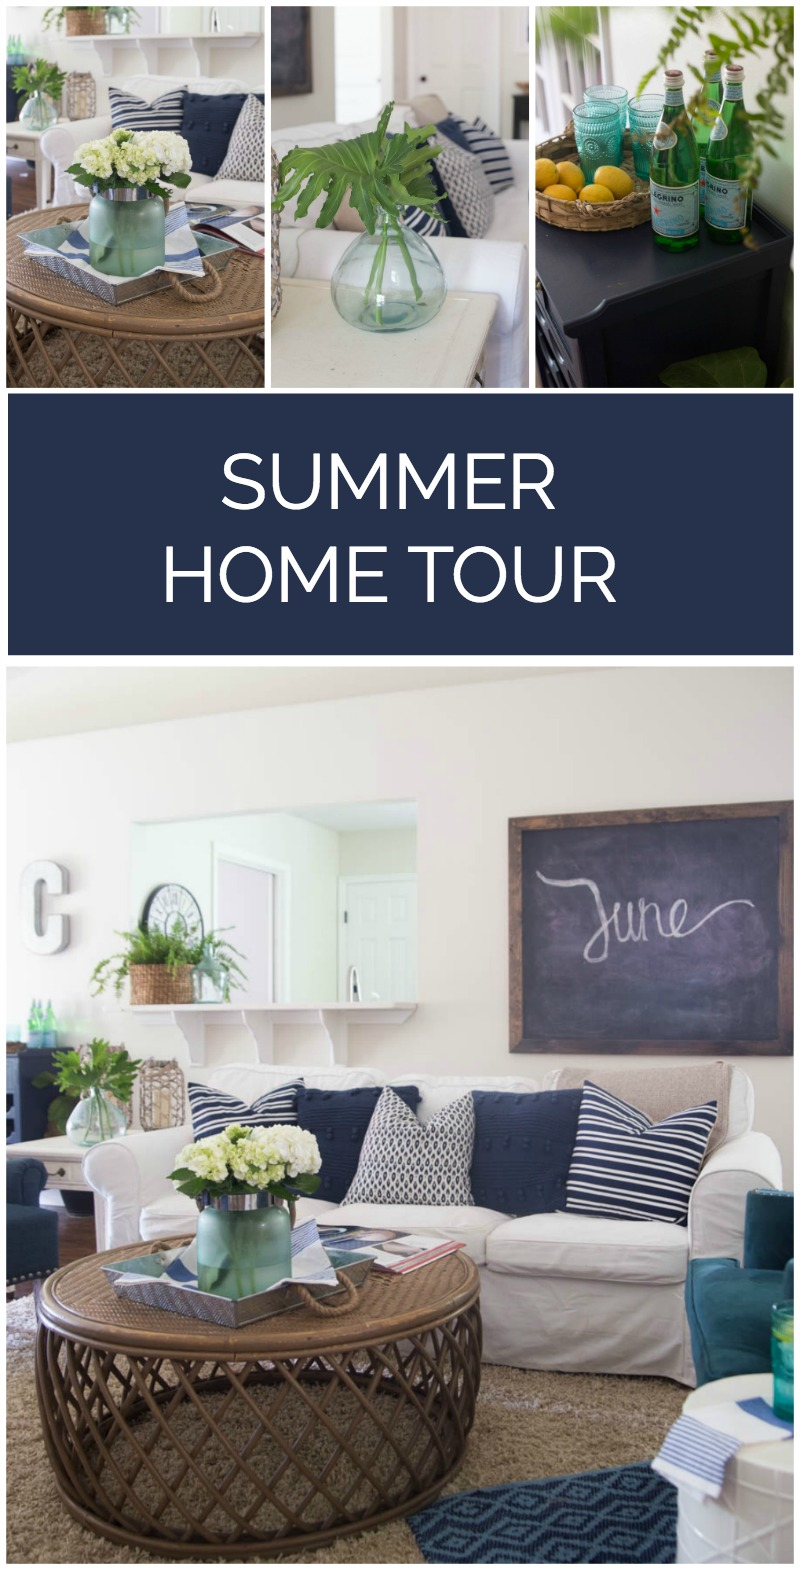 Summer Home Decor Ideas Part - 30: Summer Decorating Ideas - A Home Tour